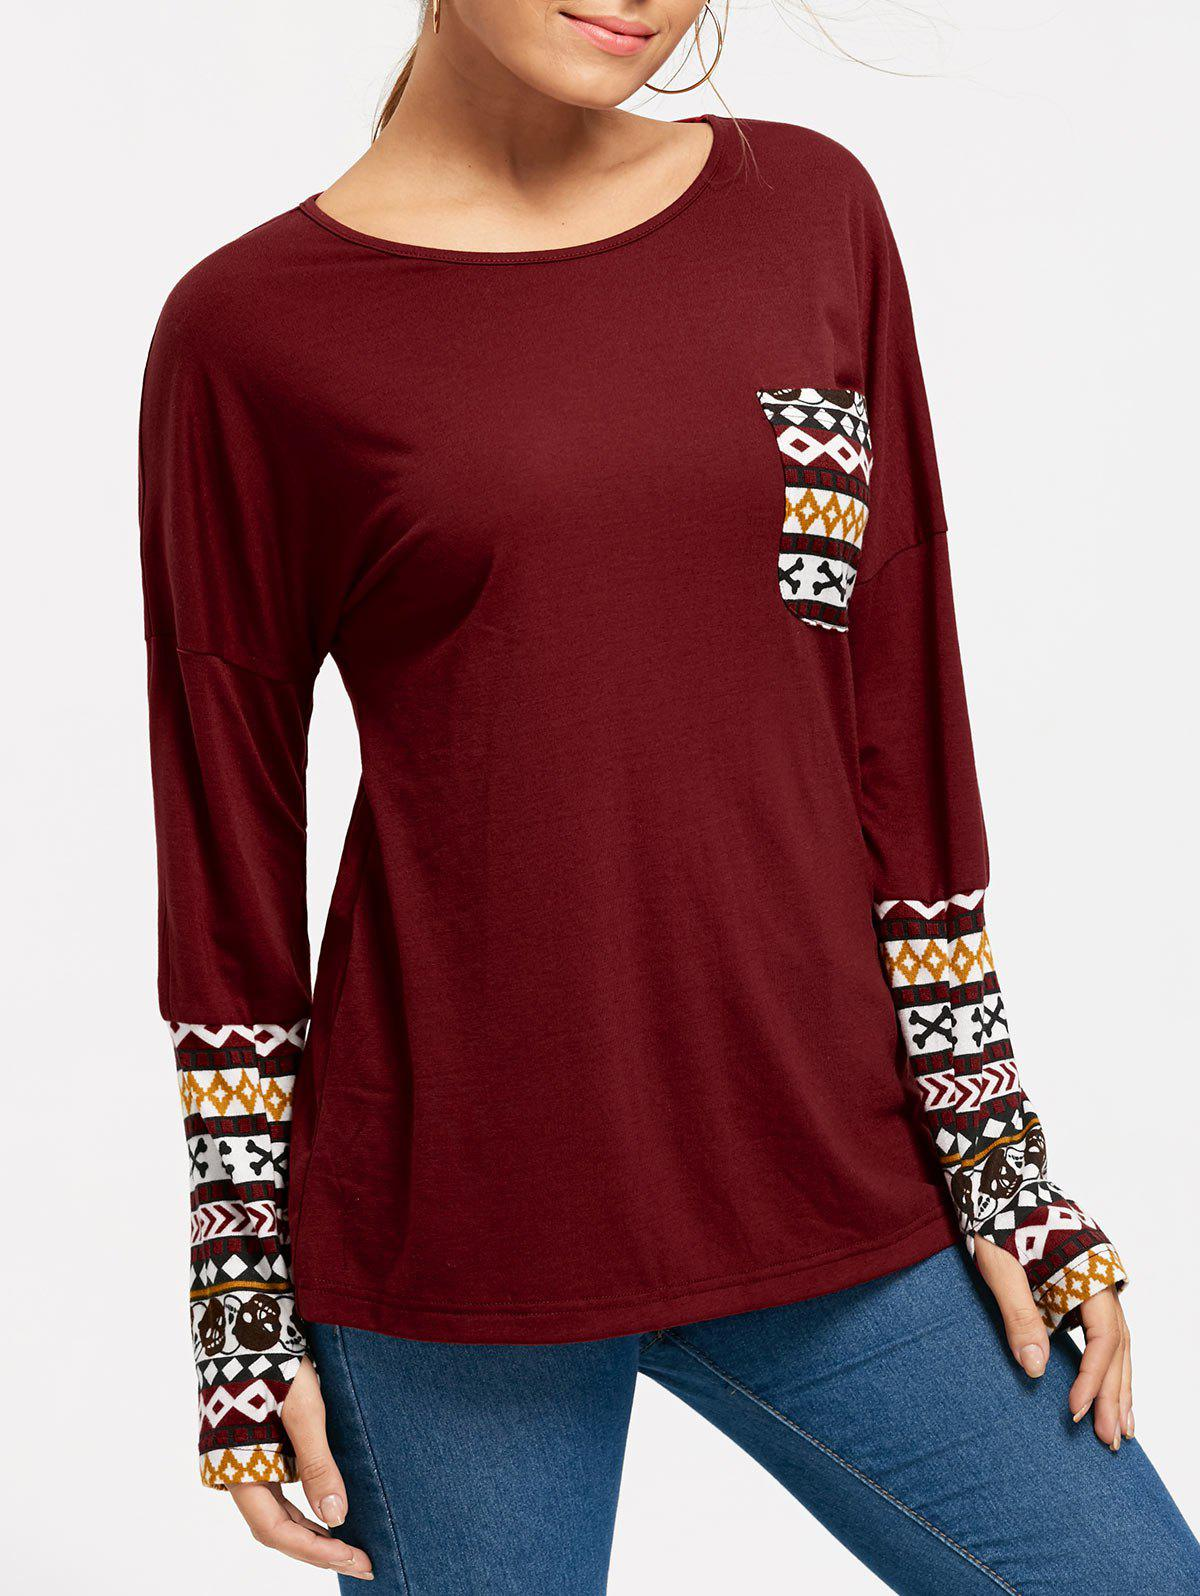 Halloween Skull Long Sleeve Pocket TopWOMEN<br><br>Size: 2XL; Color: DEEP RED; Material: Polyester,Spandex; Shirt Length: Regular; Sleeve Length: Full; Collar: Round Neck; Style: Casual; Pattern Type: Others; Season: Fall,Spring; Weight: 0.2830kg; Package Contents: 1 x Top;